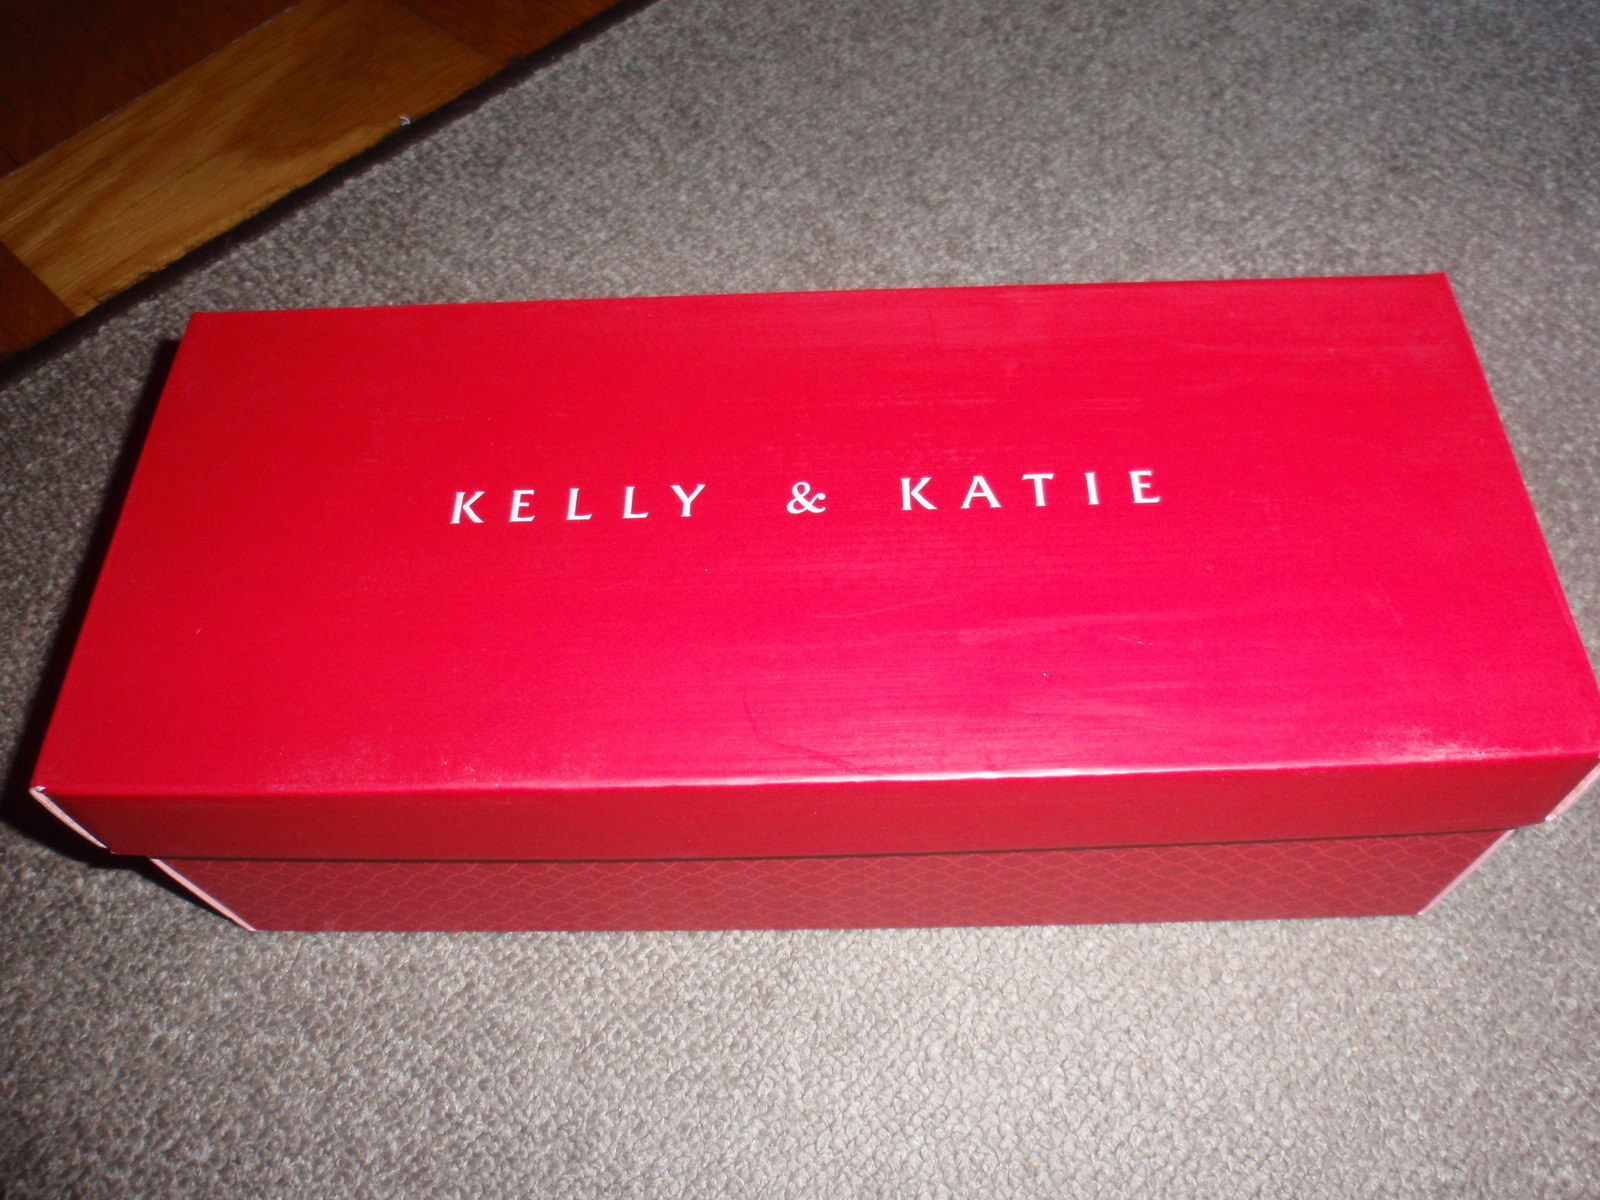 Primary image for KELLY & KATIE Shoe Gift Box - RED - EMPTY BOX - size 12 1/2 x 5 1/8 x 4